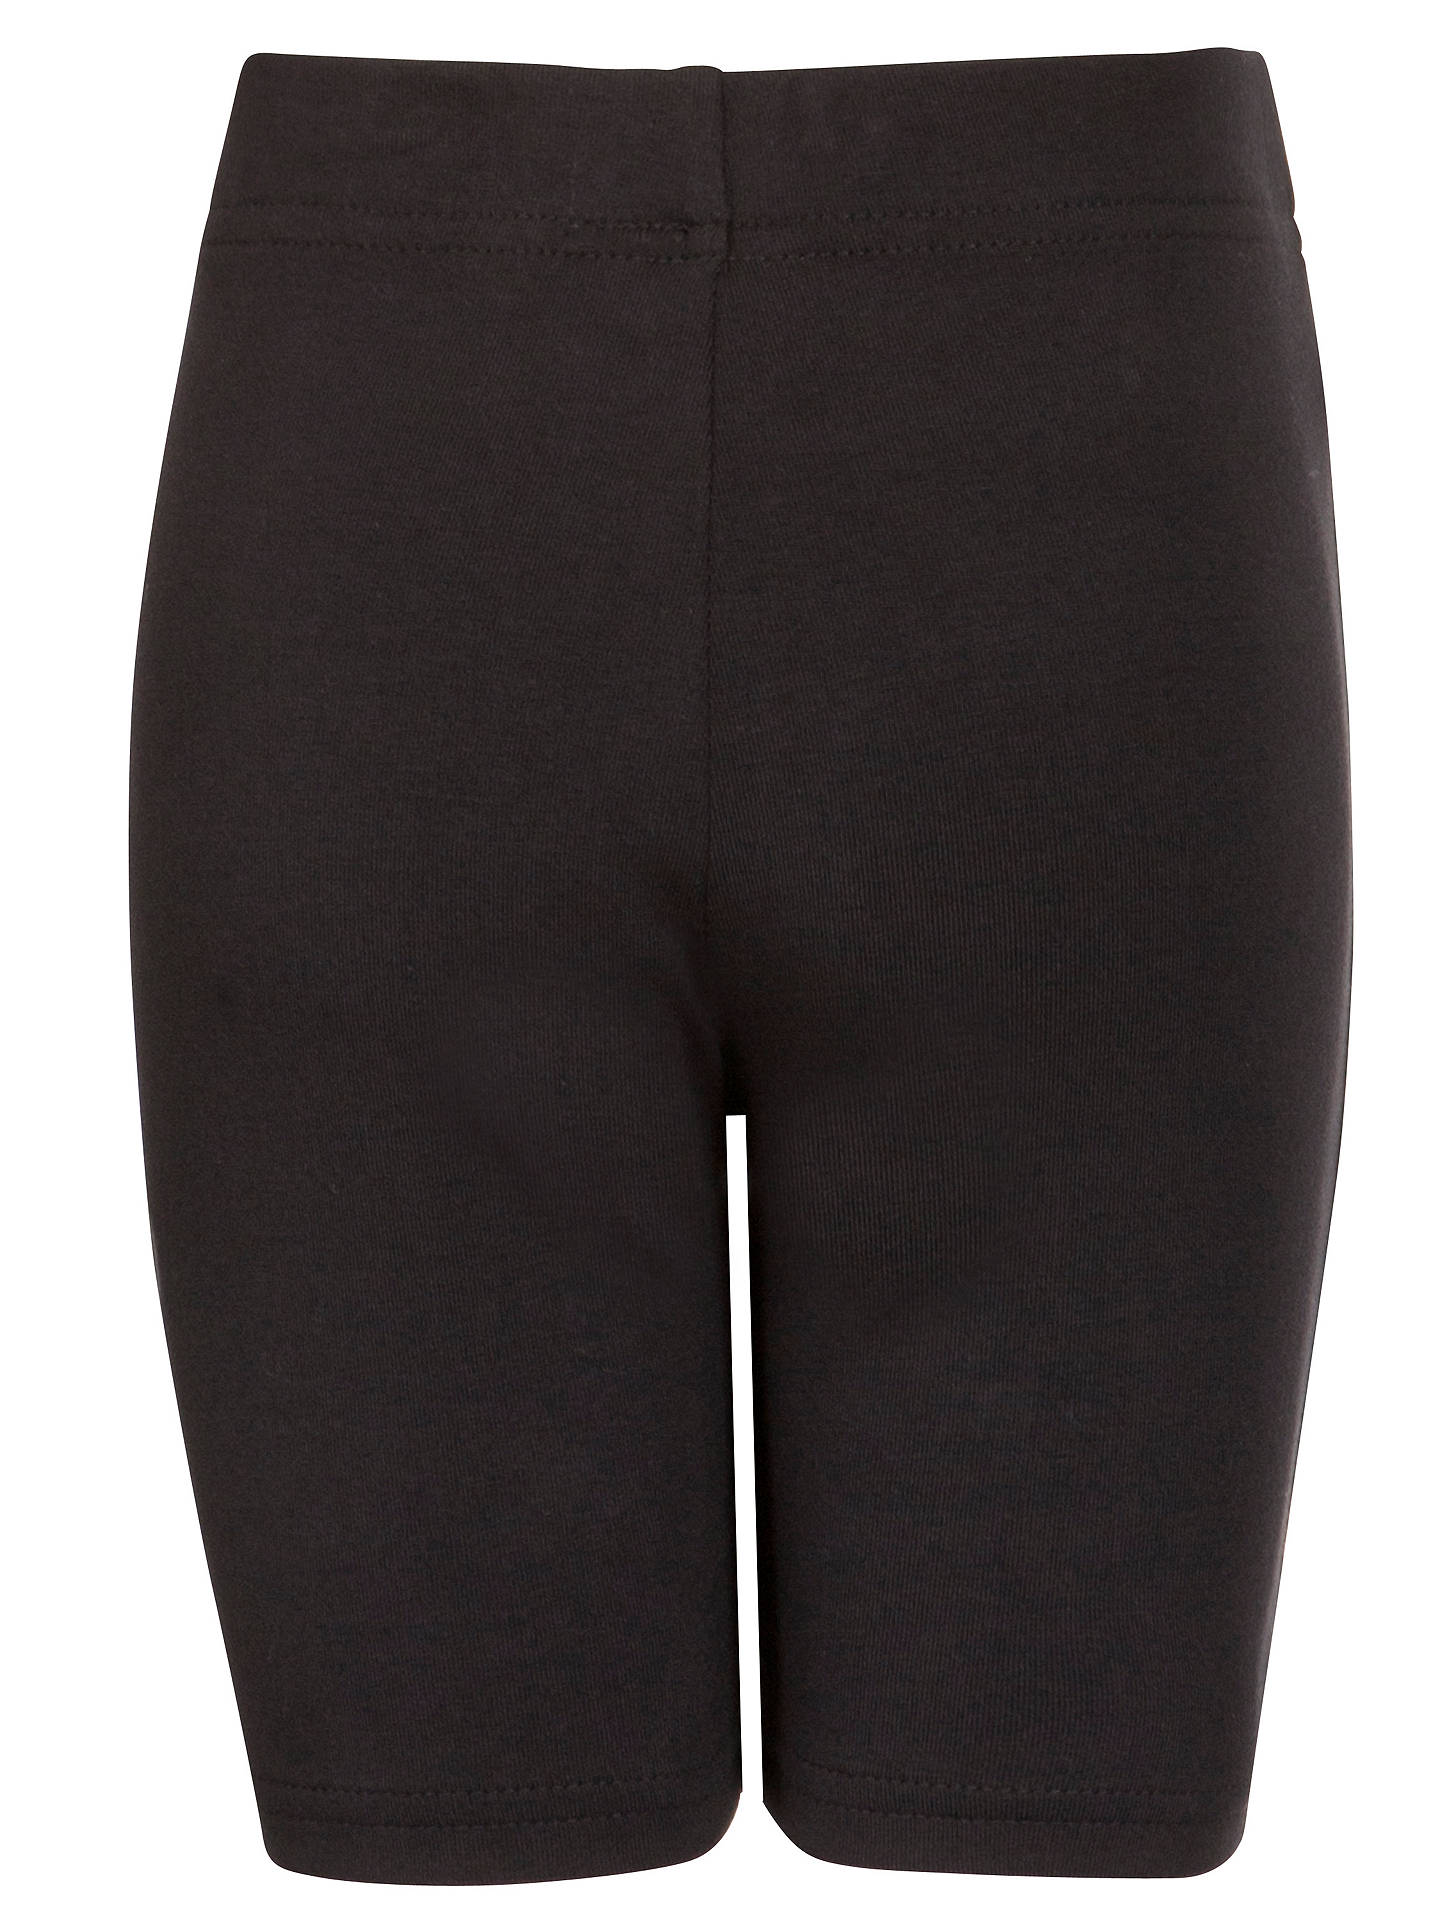 BuyJohn Lewis & Partners School Cycle Shorts, Black, 3-4 years Online at johnlewis.com